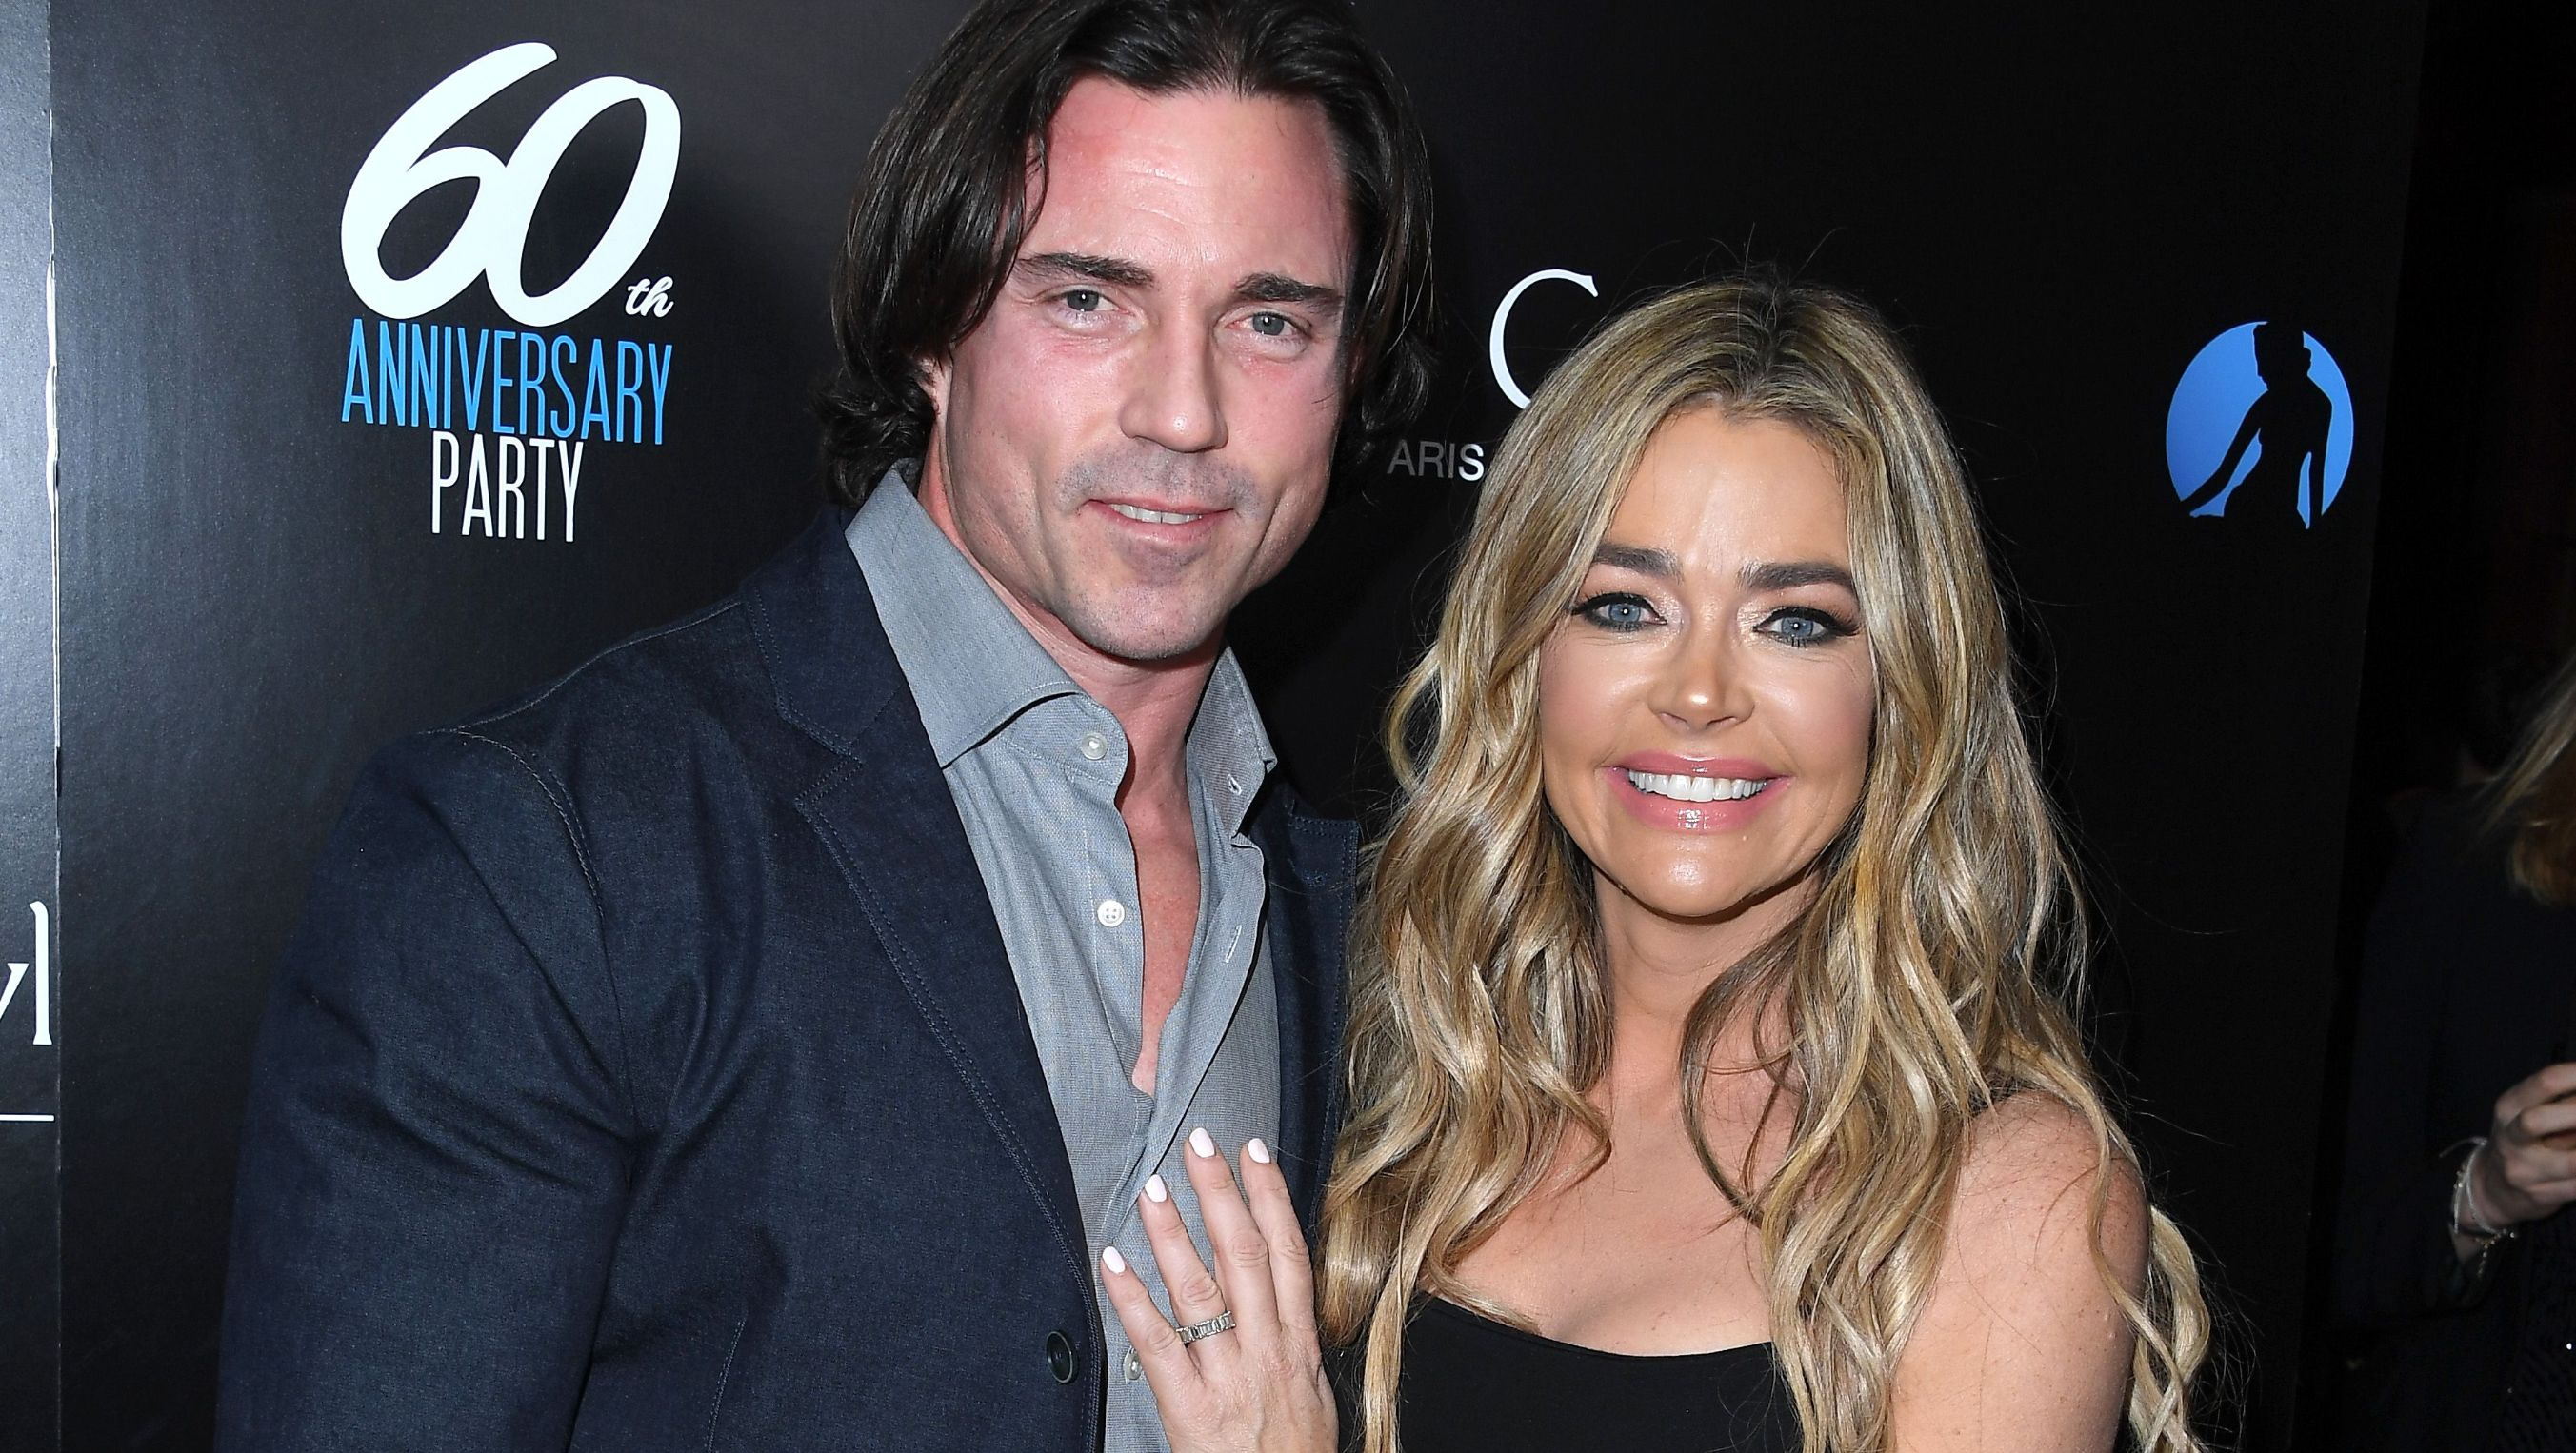 Aaron Phypers and Denise Richards attend an anniversary party.